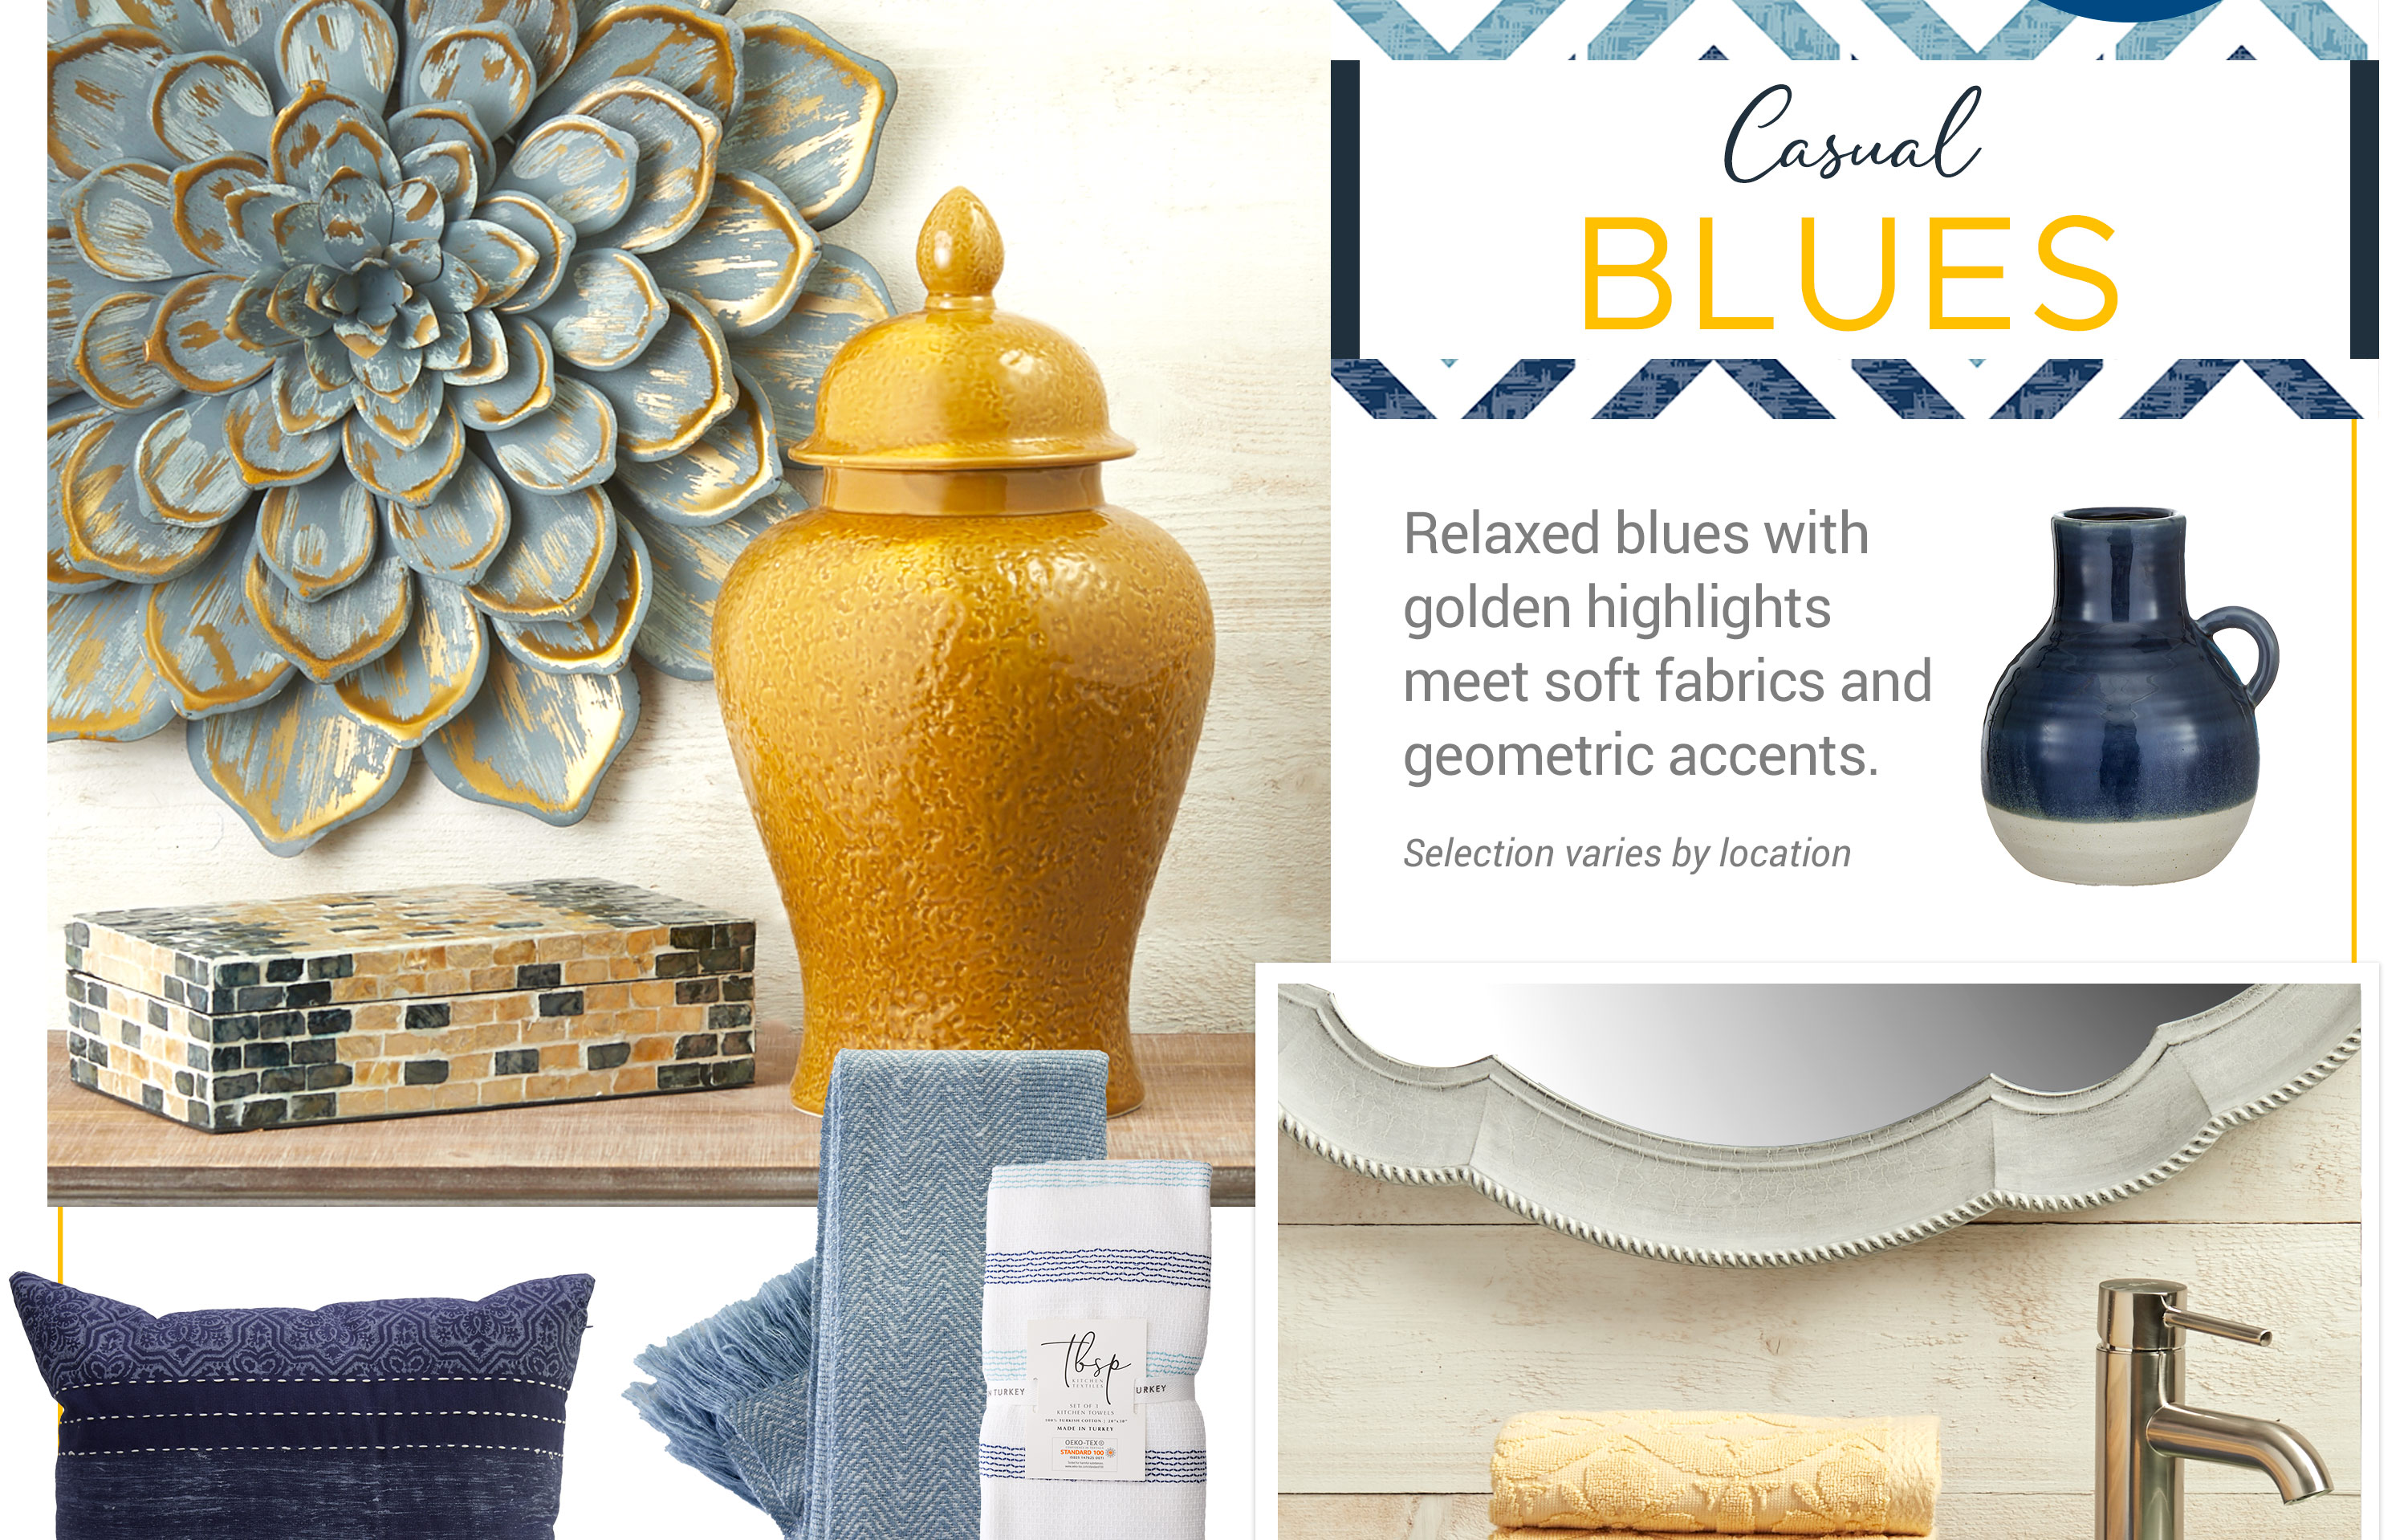 Casual Blues - Relaxed blues with golden highlights meet soft fabrics and geometric accents.